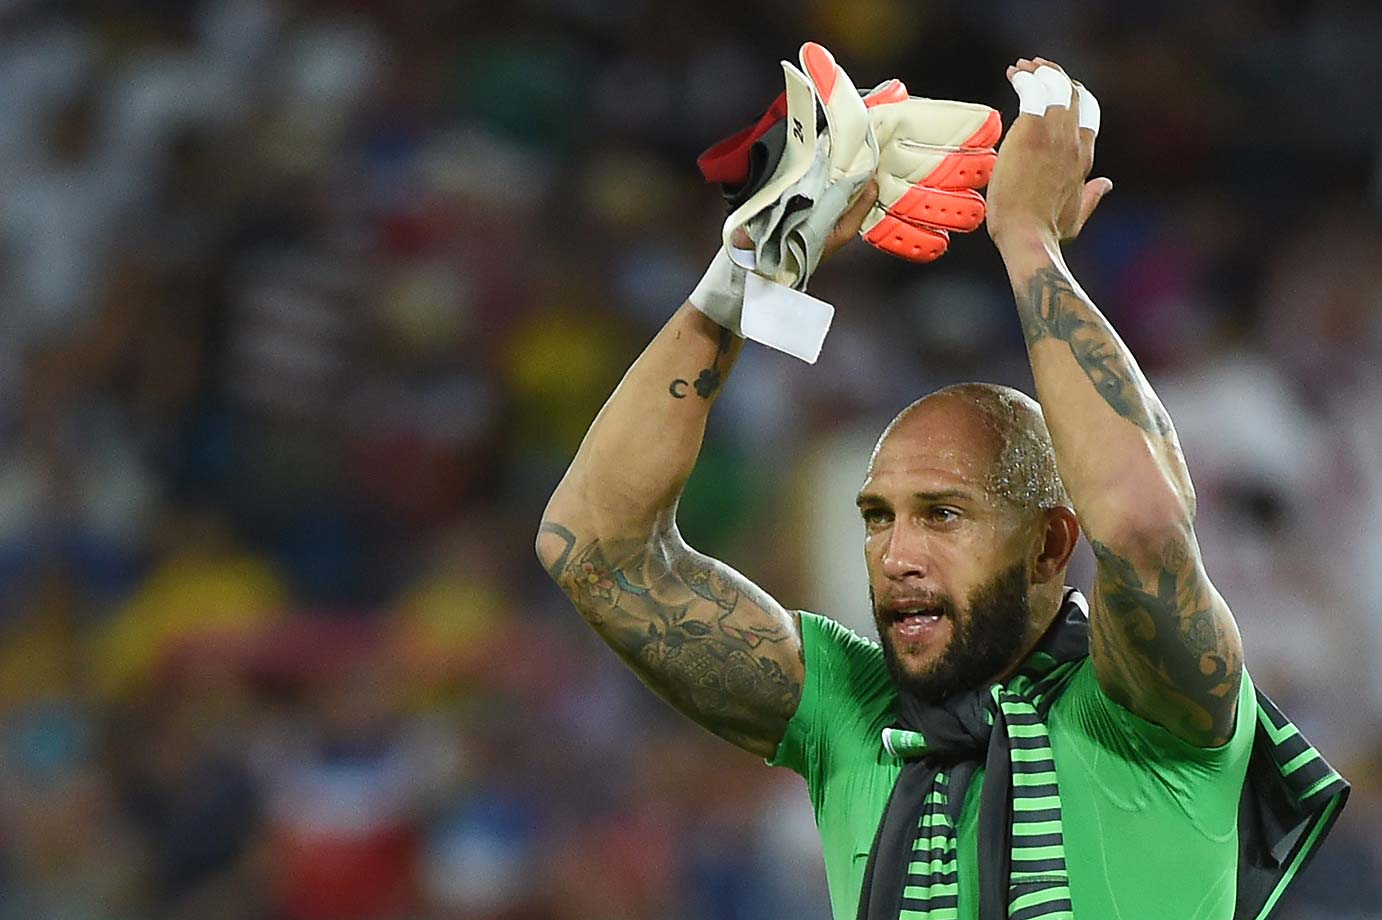 Tim Howard celebrates the hard-earned victory.